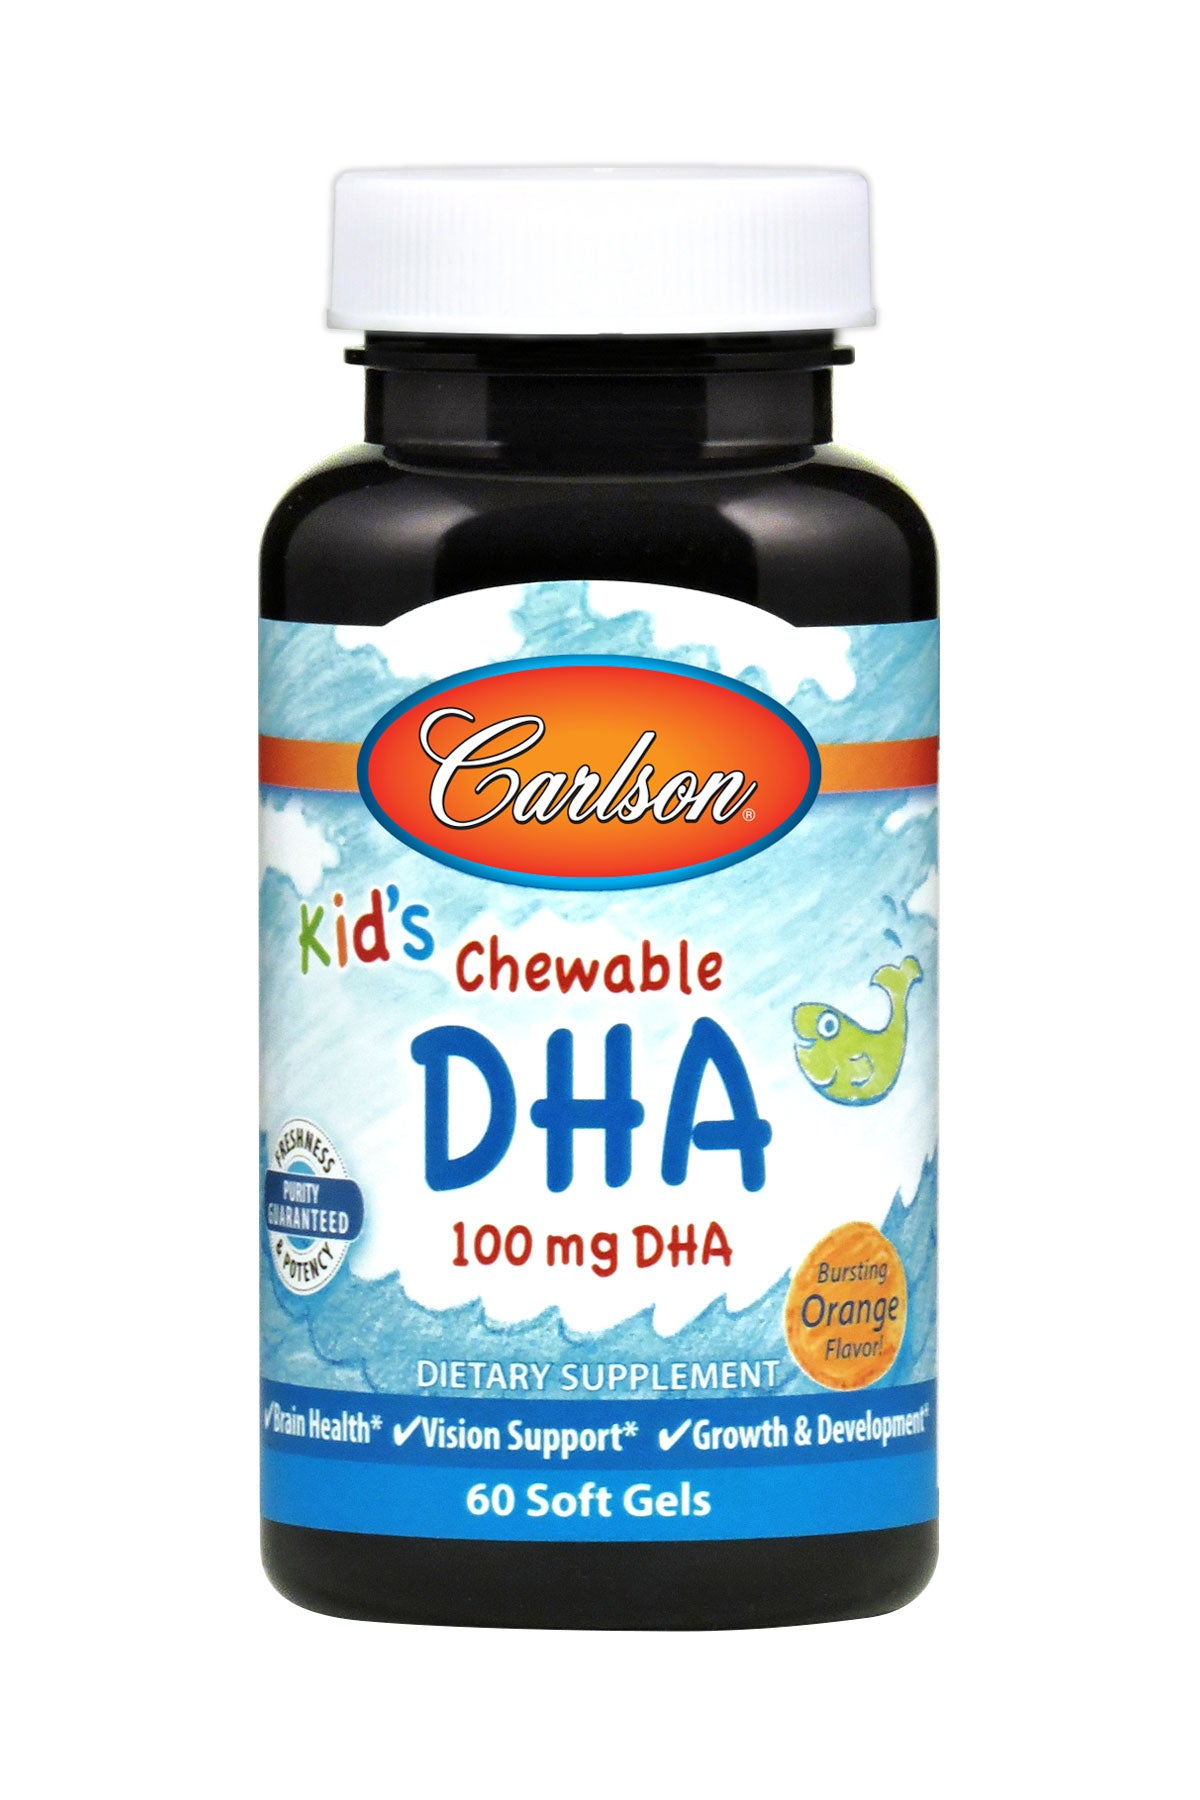 Kids Chewable Dha 60